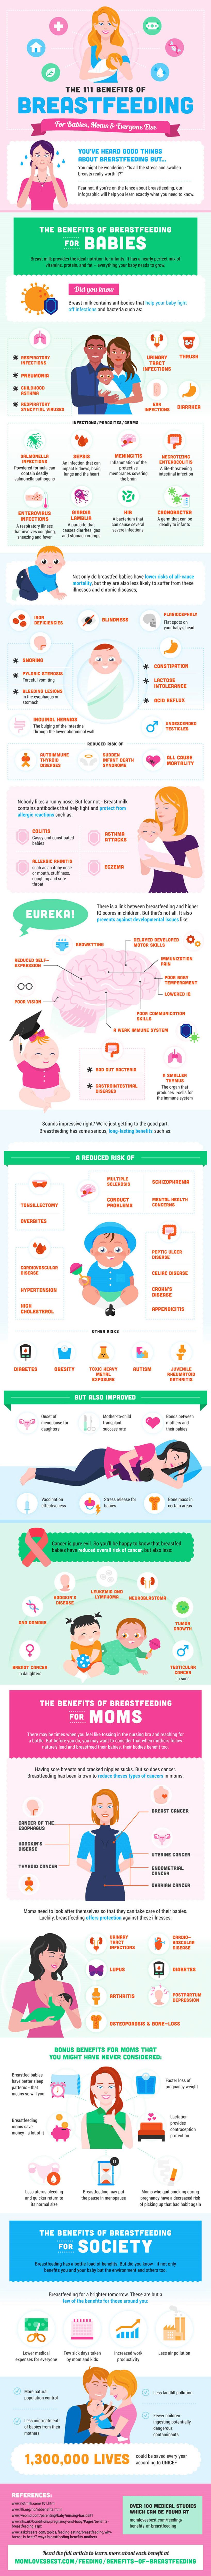 Advantages of Breastfeeding for Mother Infographic